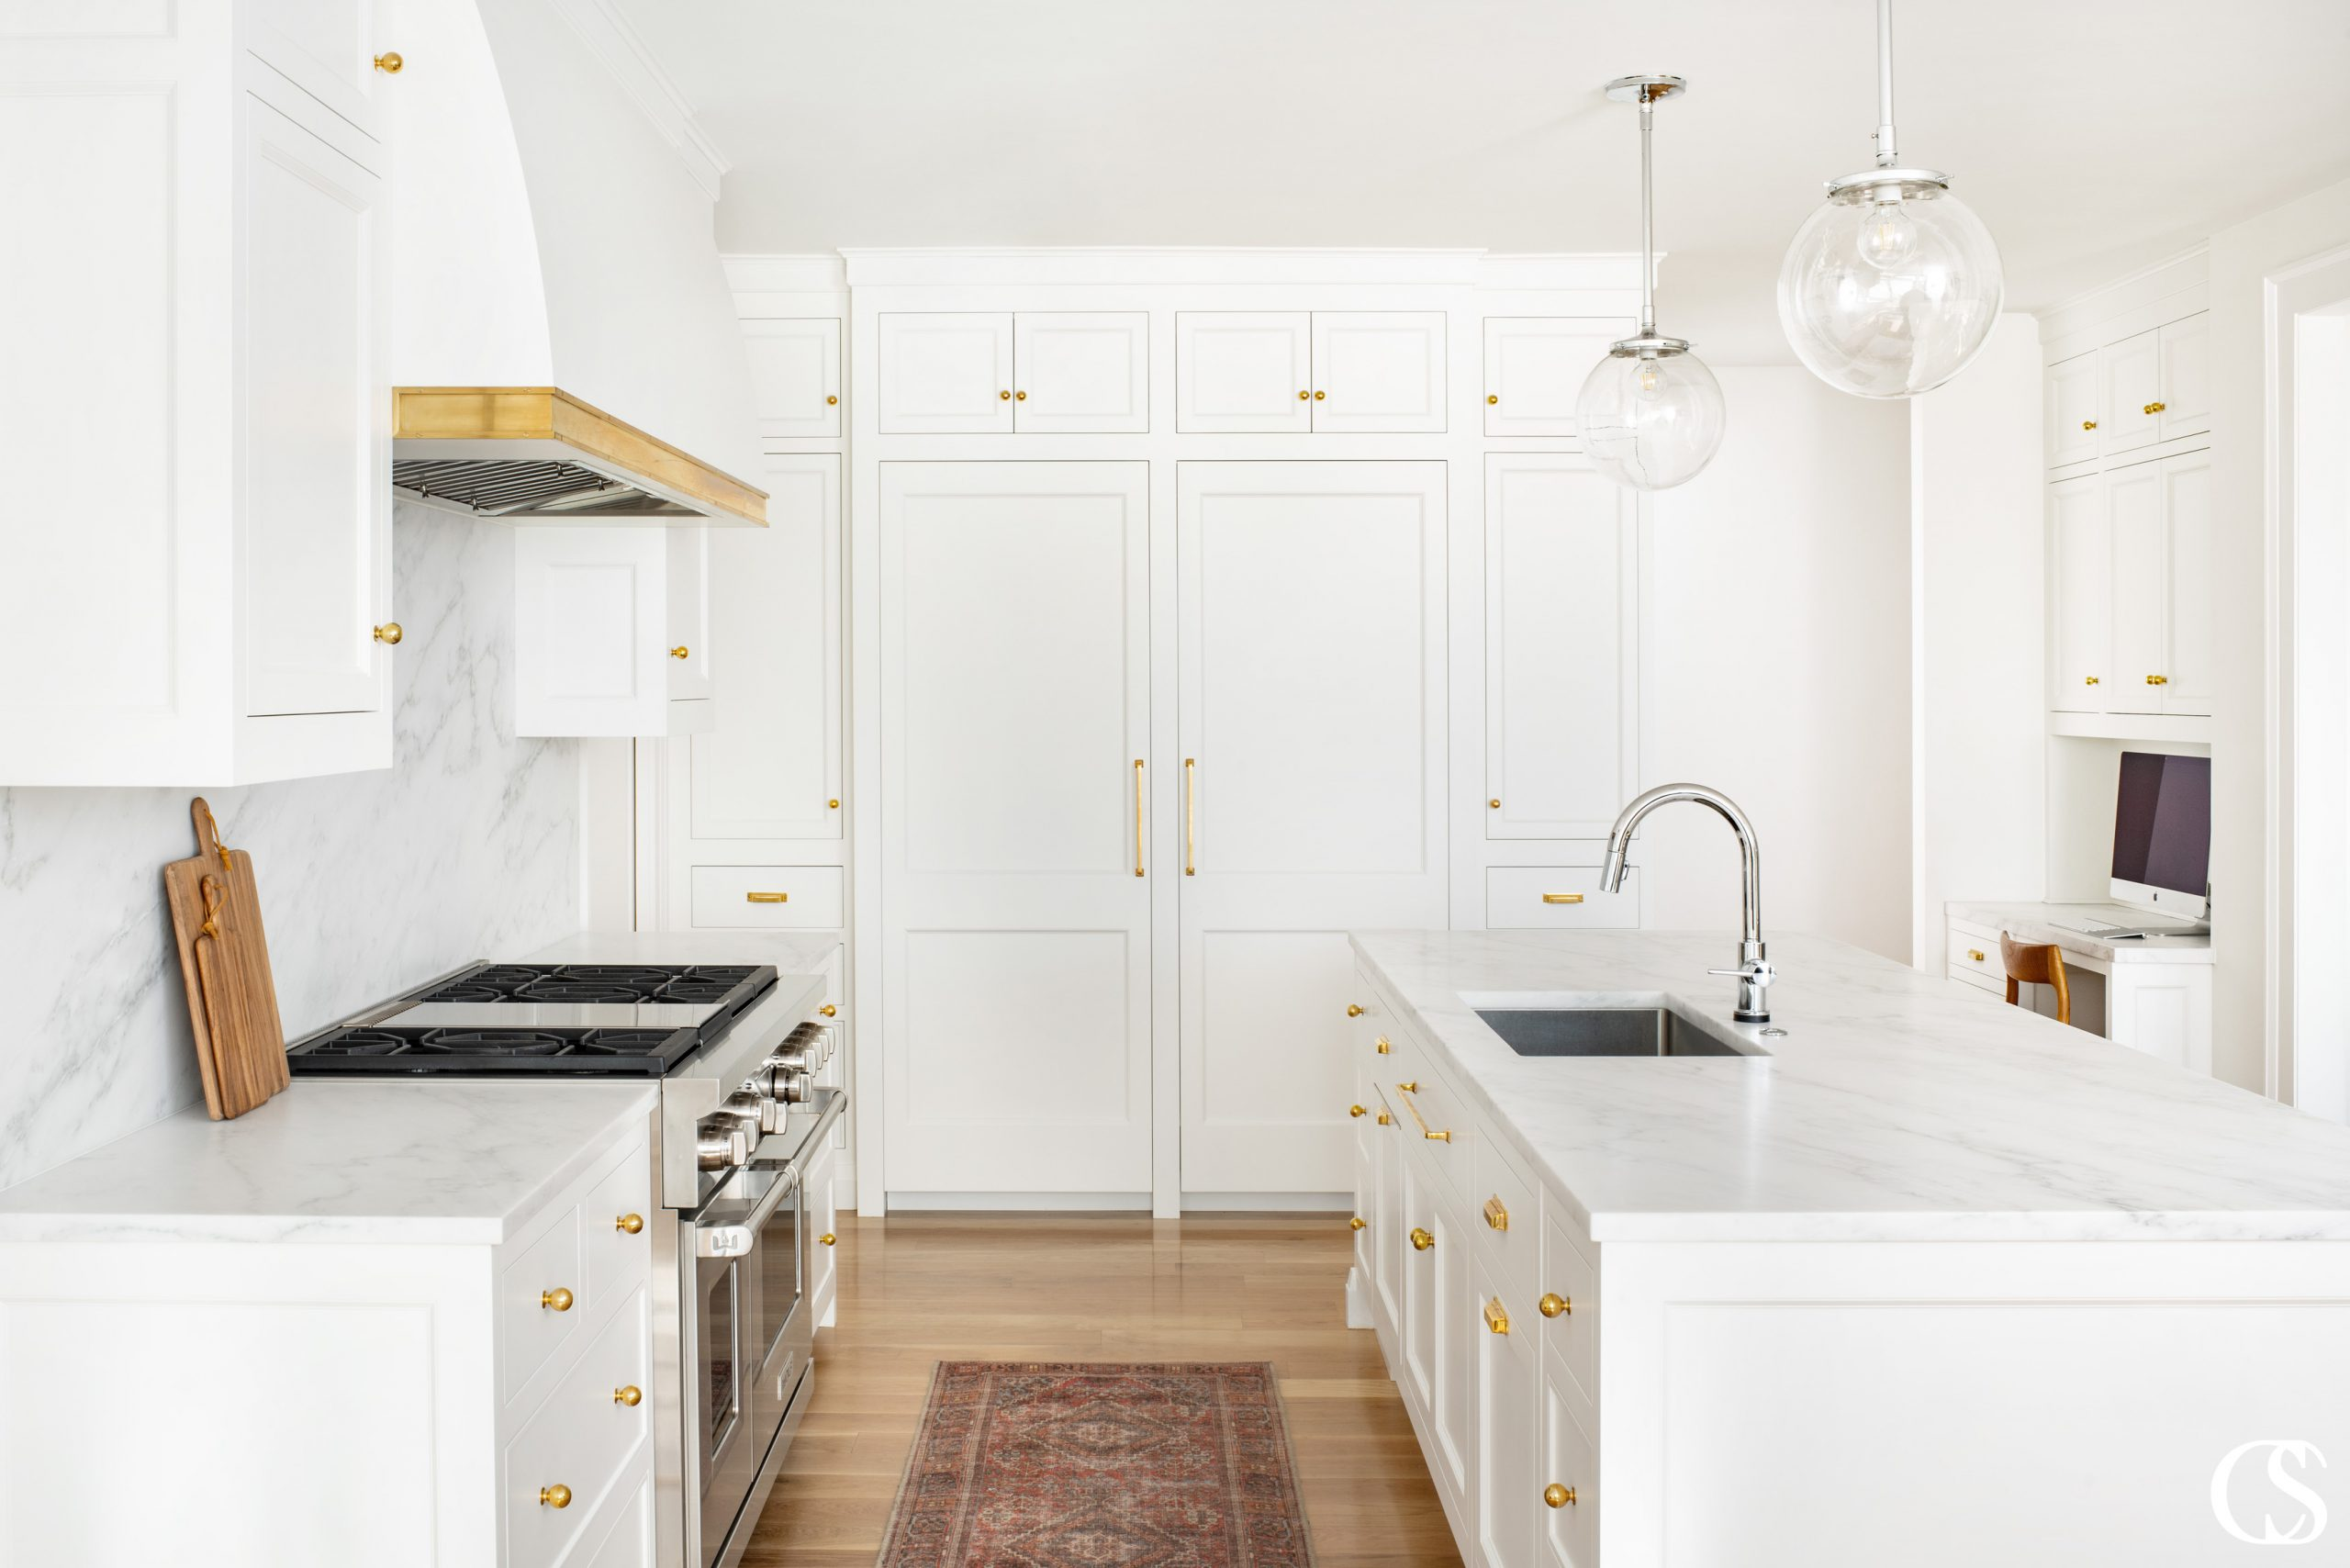 The best custom kitchen design ideas will incorporate two things—style design and layout design. And what that means for each homeowner will be completely unique.